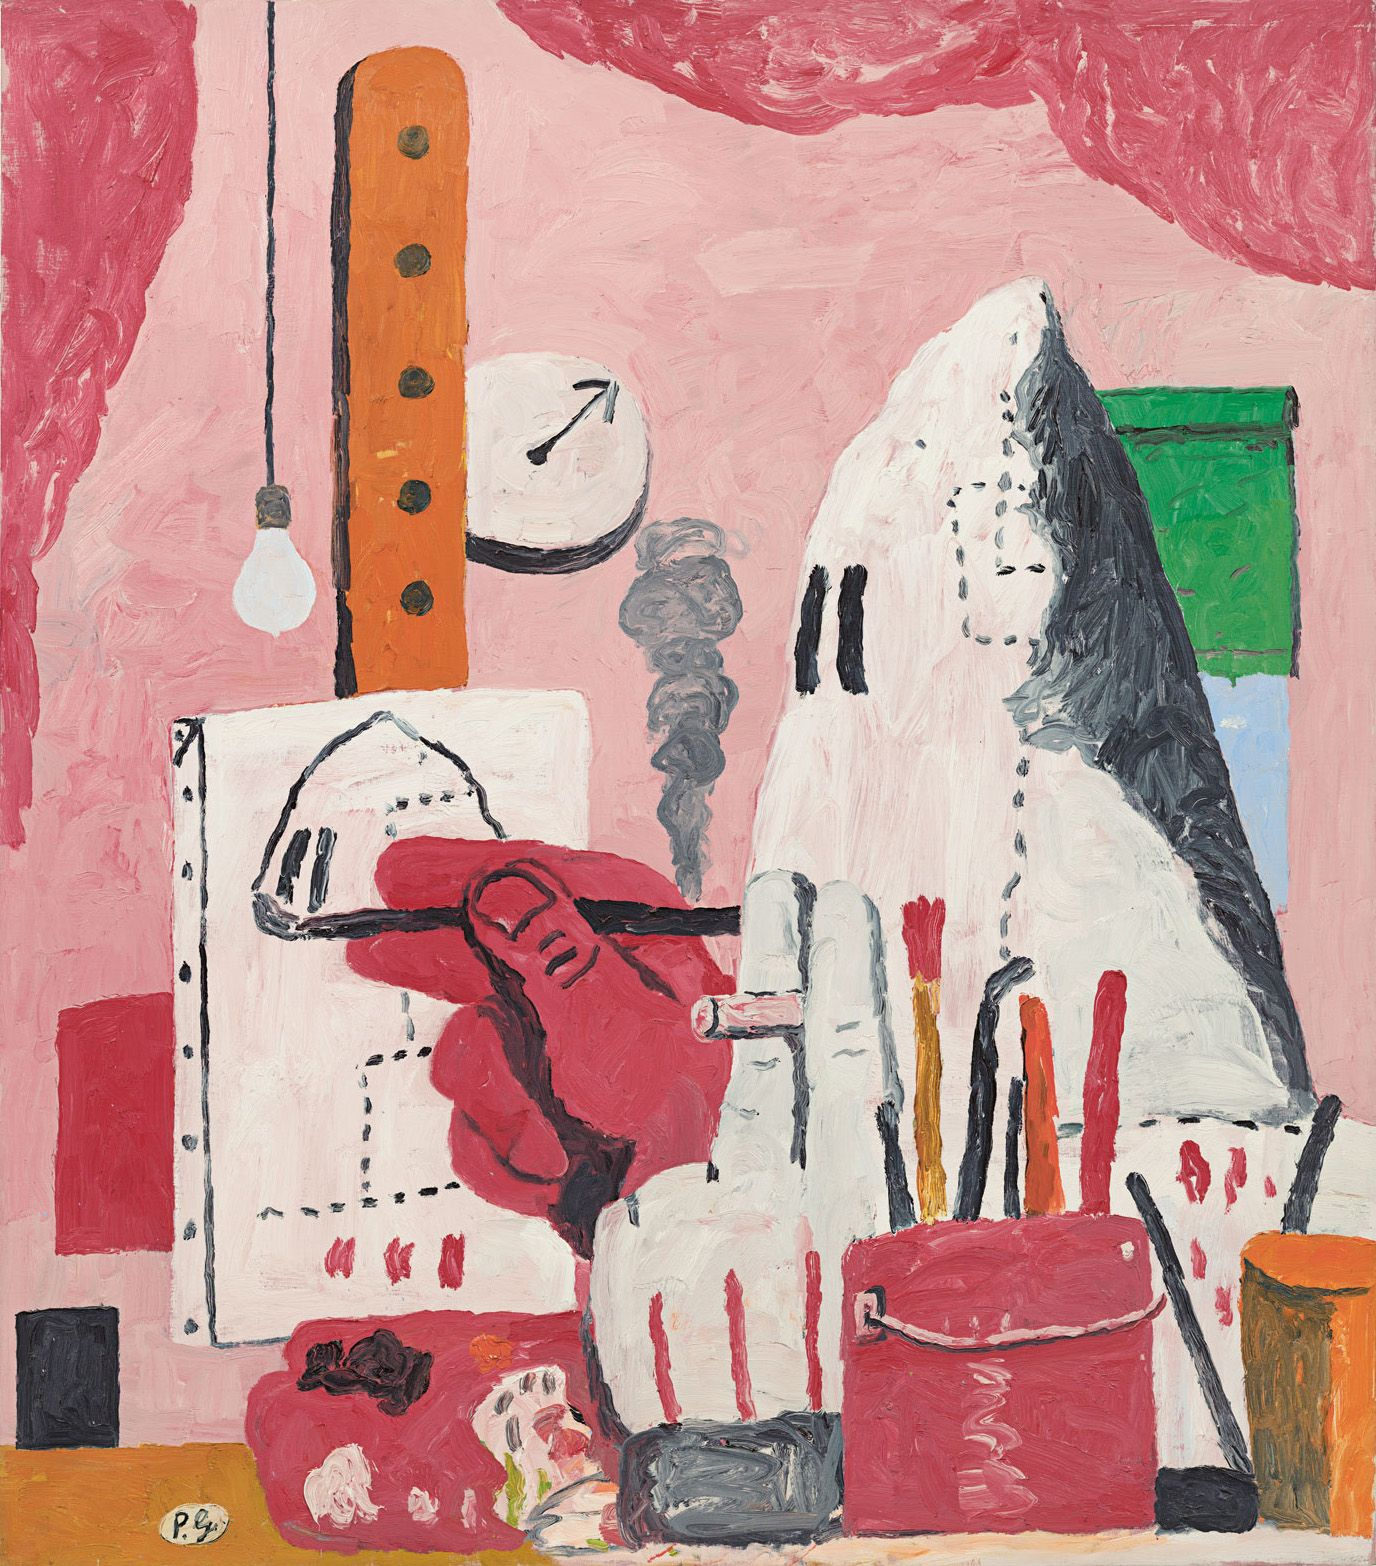 Critics, scholars—and even museum's own curator—condemn decision to postpone Philip Guston show over Ku Klux Klan imagery